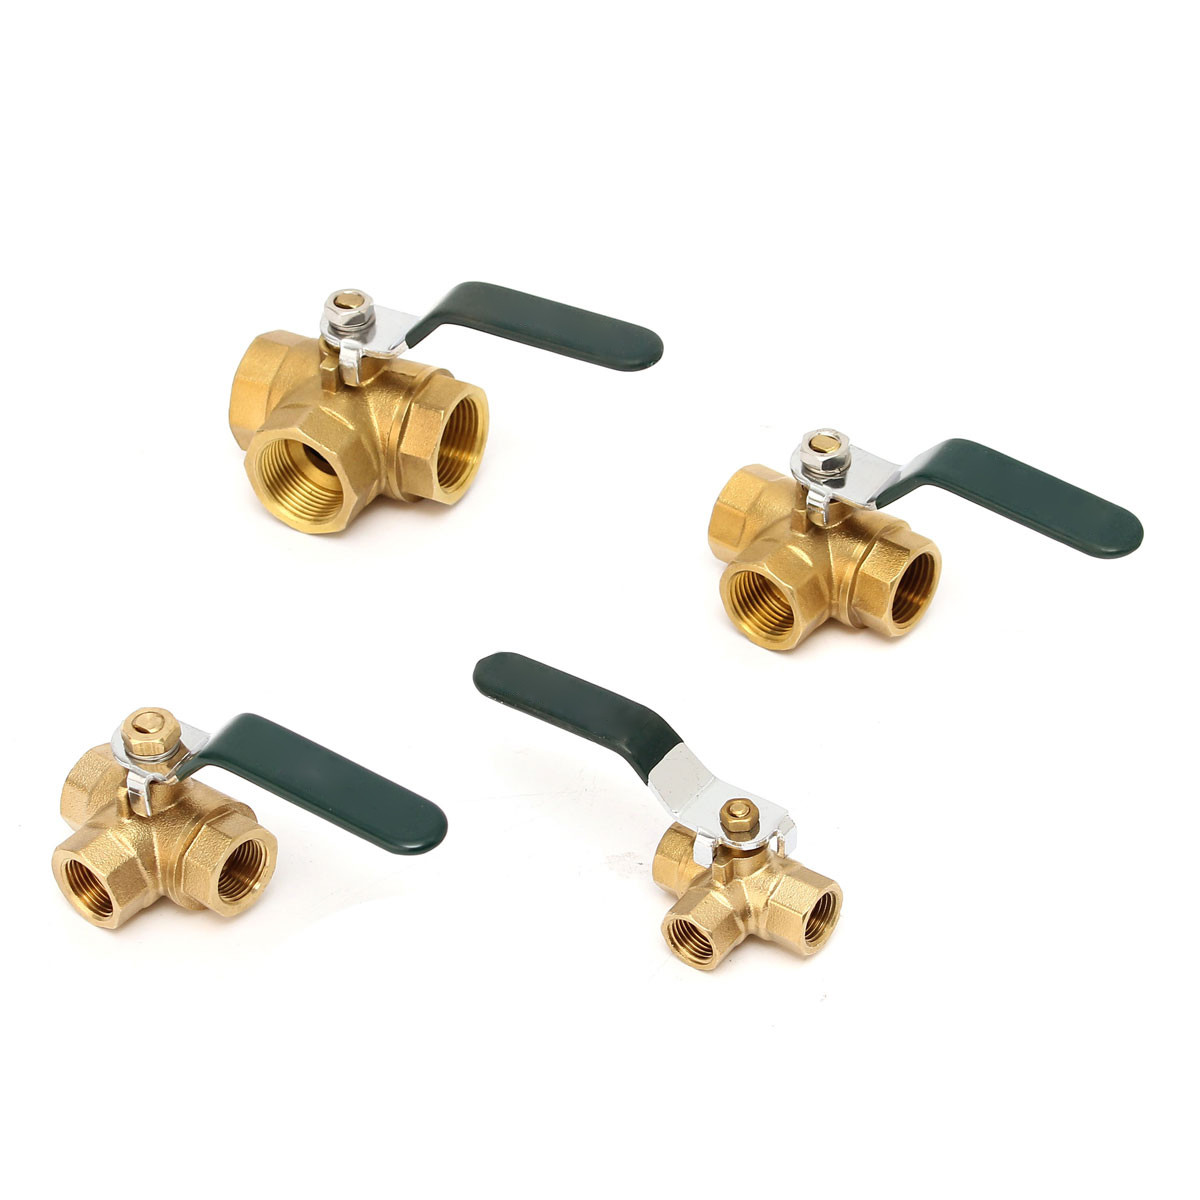 1/4'' 3/8'' 1/2'' 3/4''Brass Ball Valve Fixed 3 Way Full L/T Type Port Thread Connector Faucet Value Water Filter Adapter Handle цены